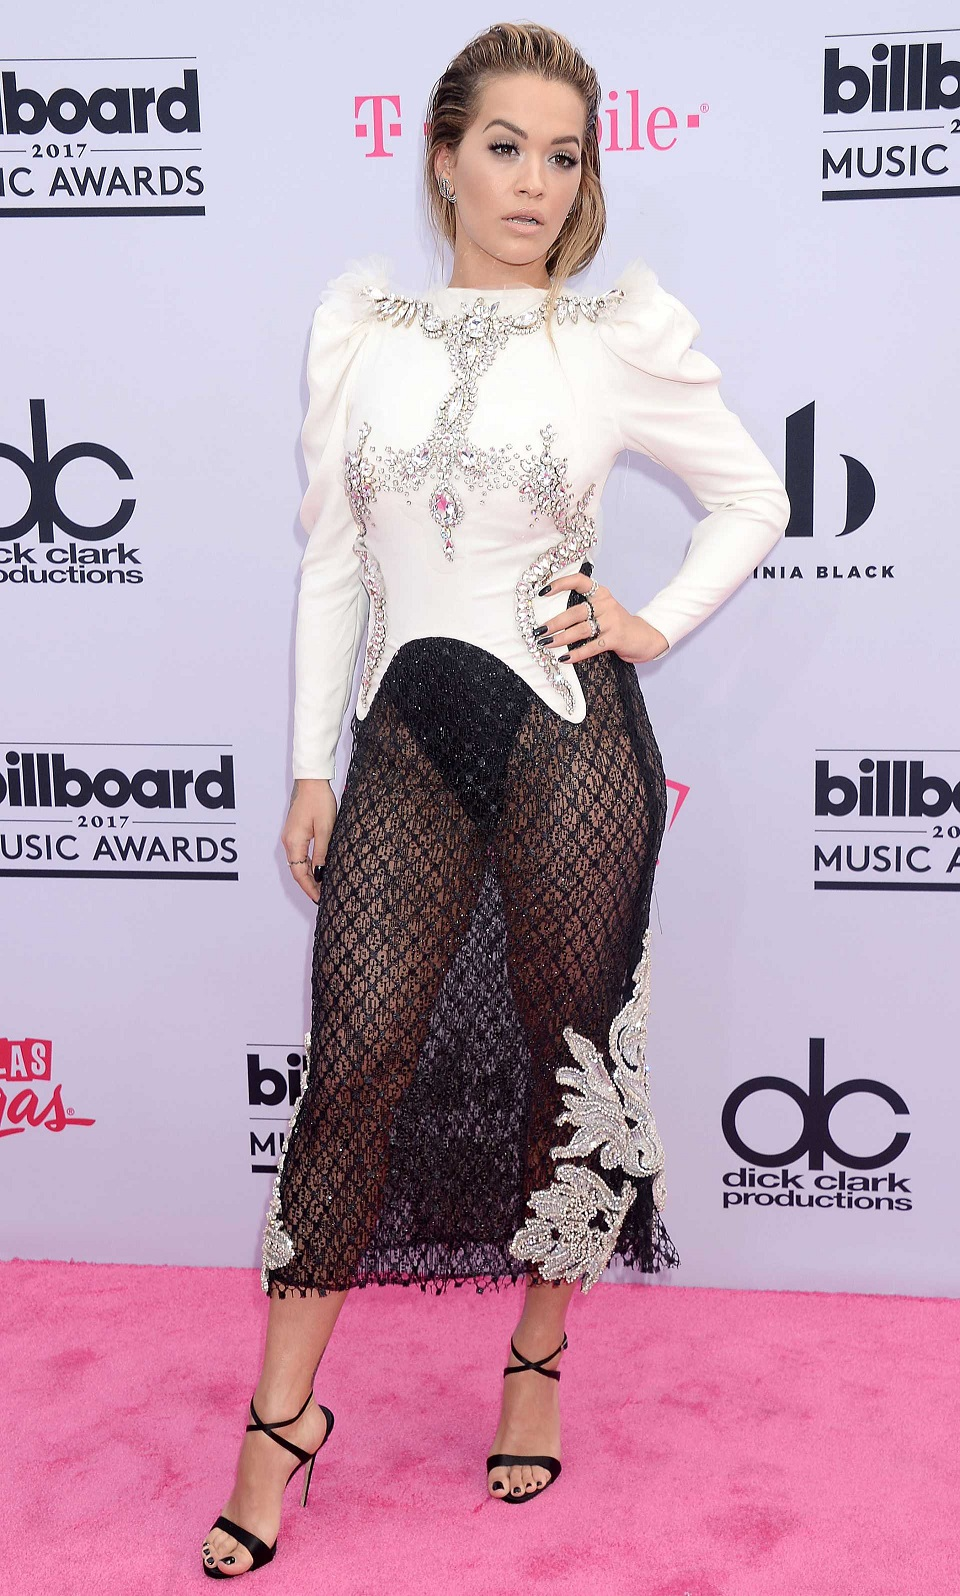 Rita Ora at 2017 Billboard Music Awards in Las Vegas